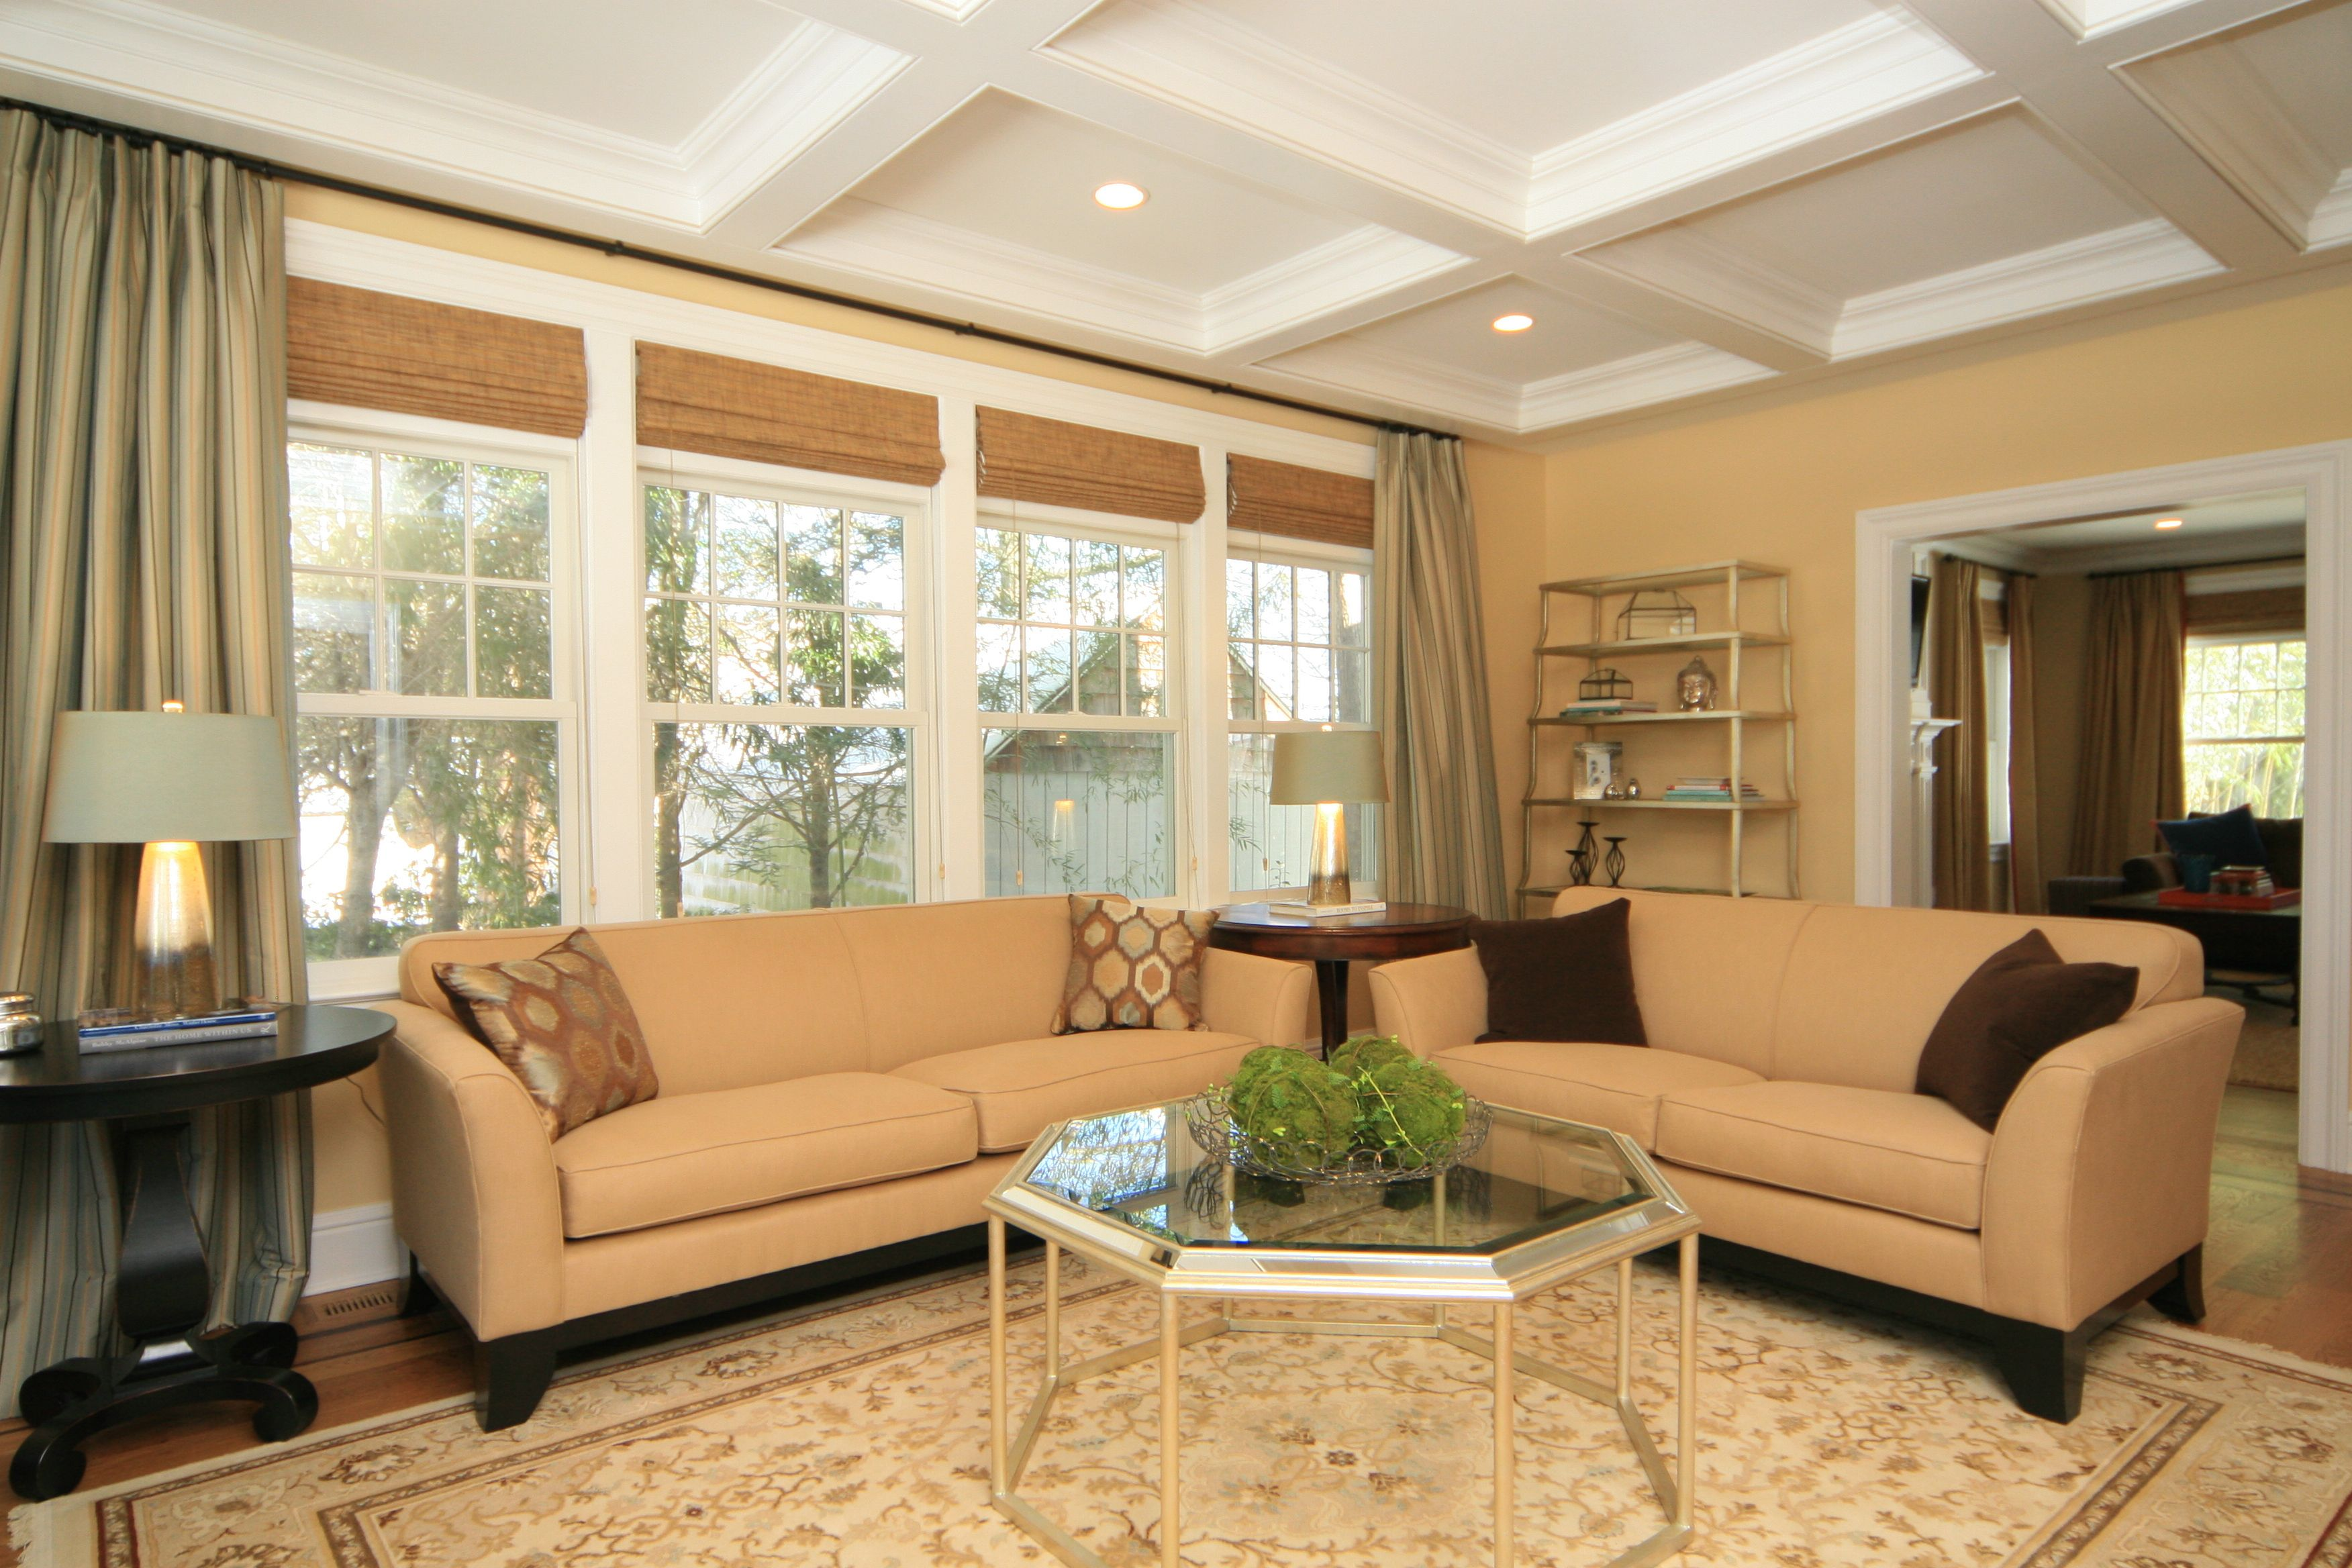 Interior Decorating Living Room Furniture Placement - What ...